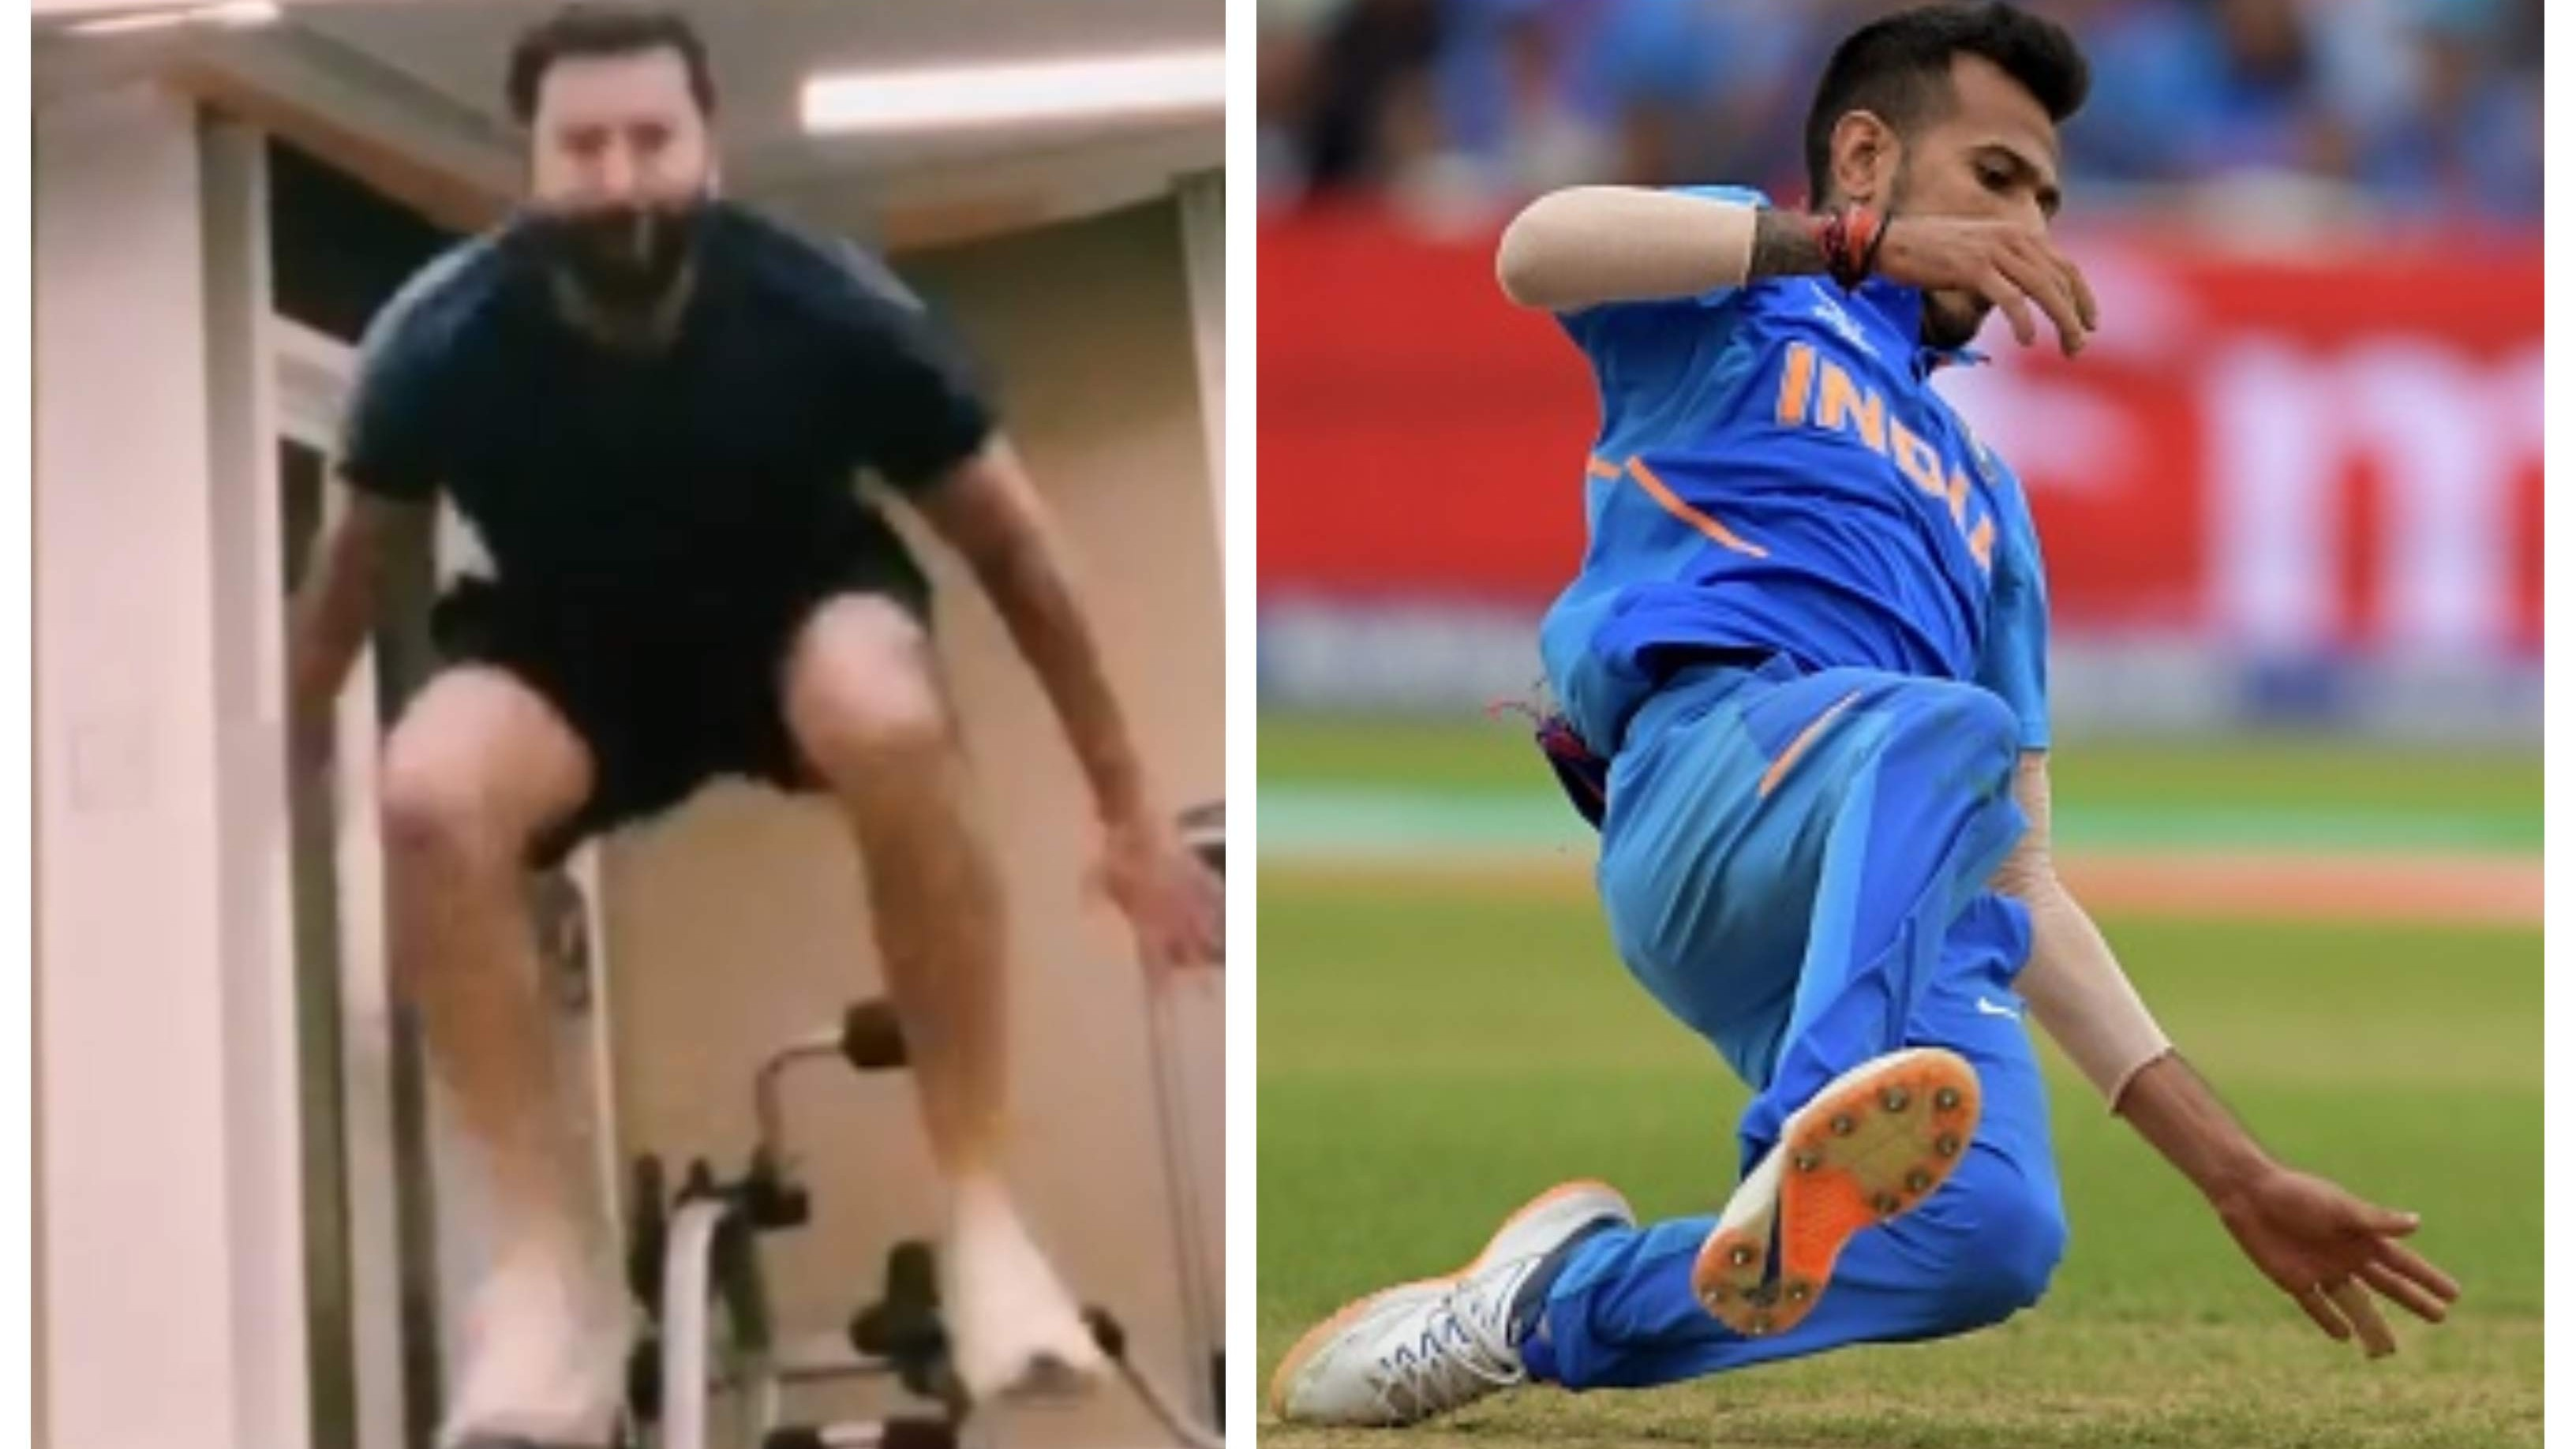 'That's my little boy Chahal when he is fielding': Rohit shares hilarious post on Instagram